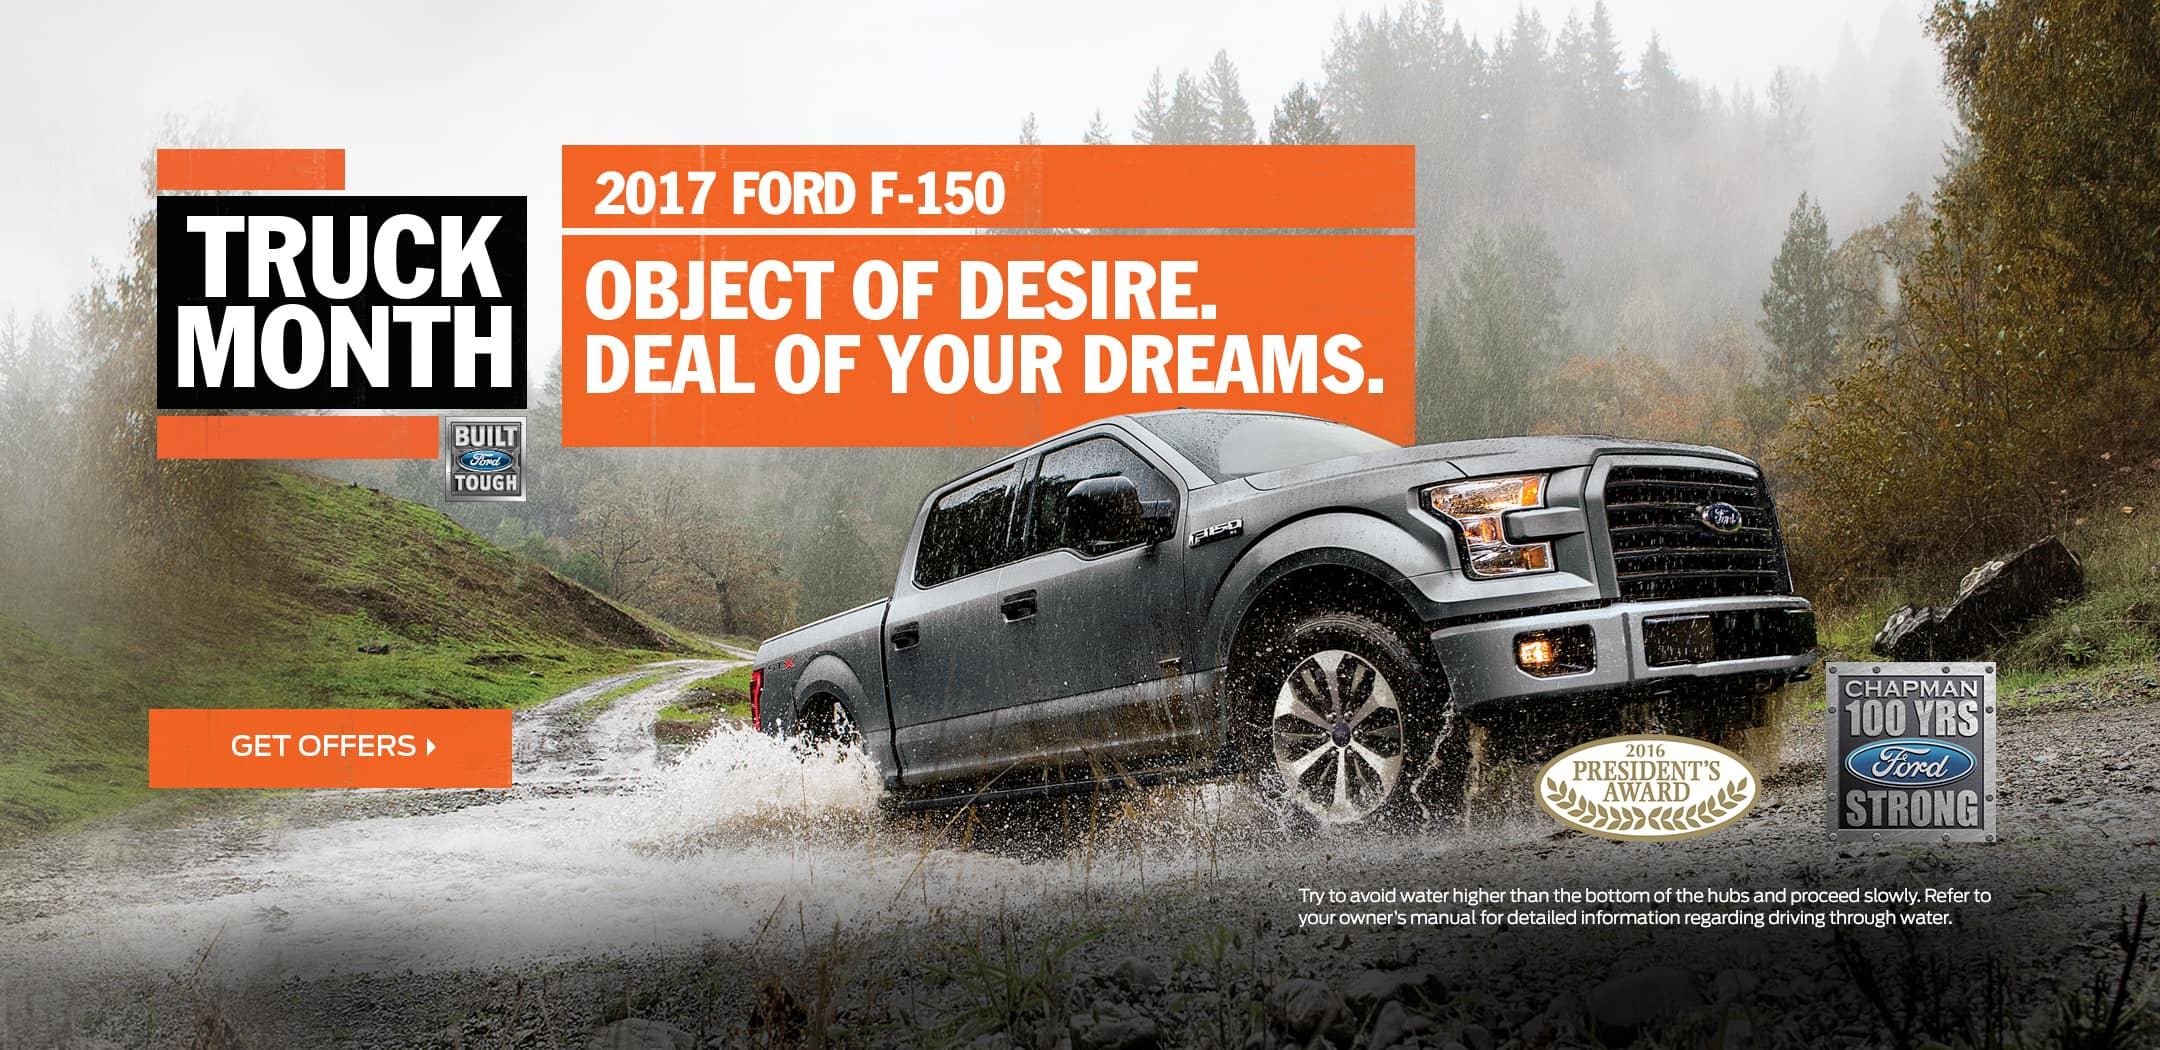 Truck Month at Bob Chapman Ford